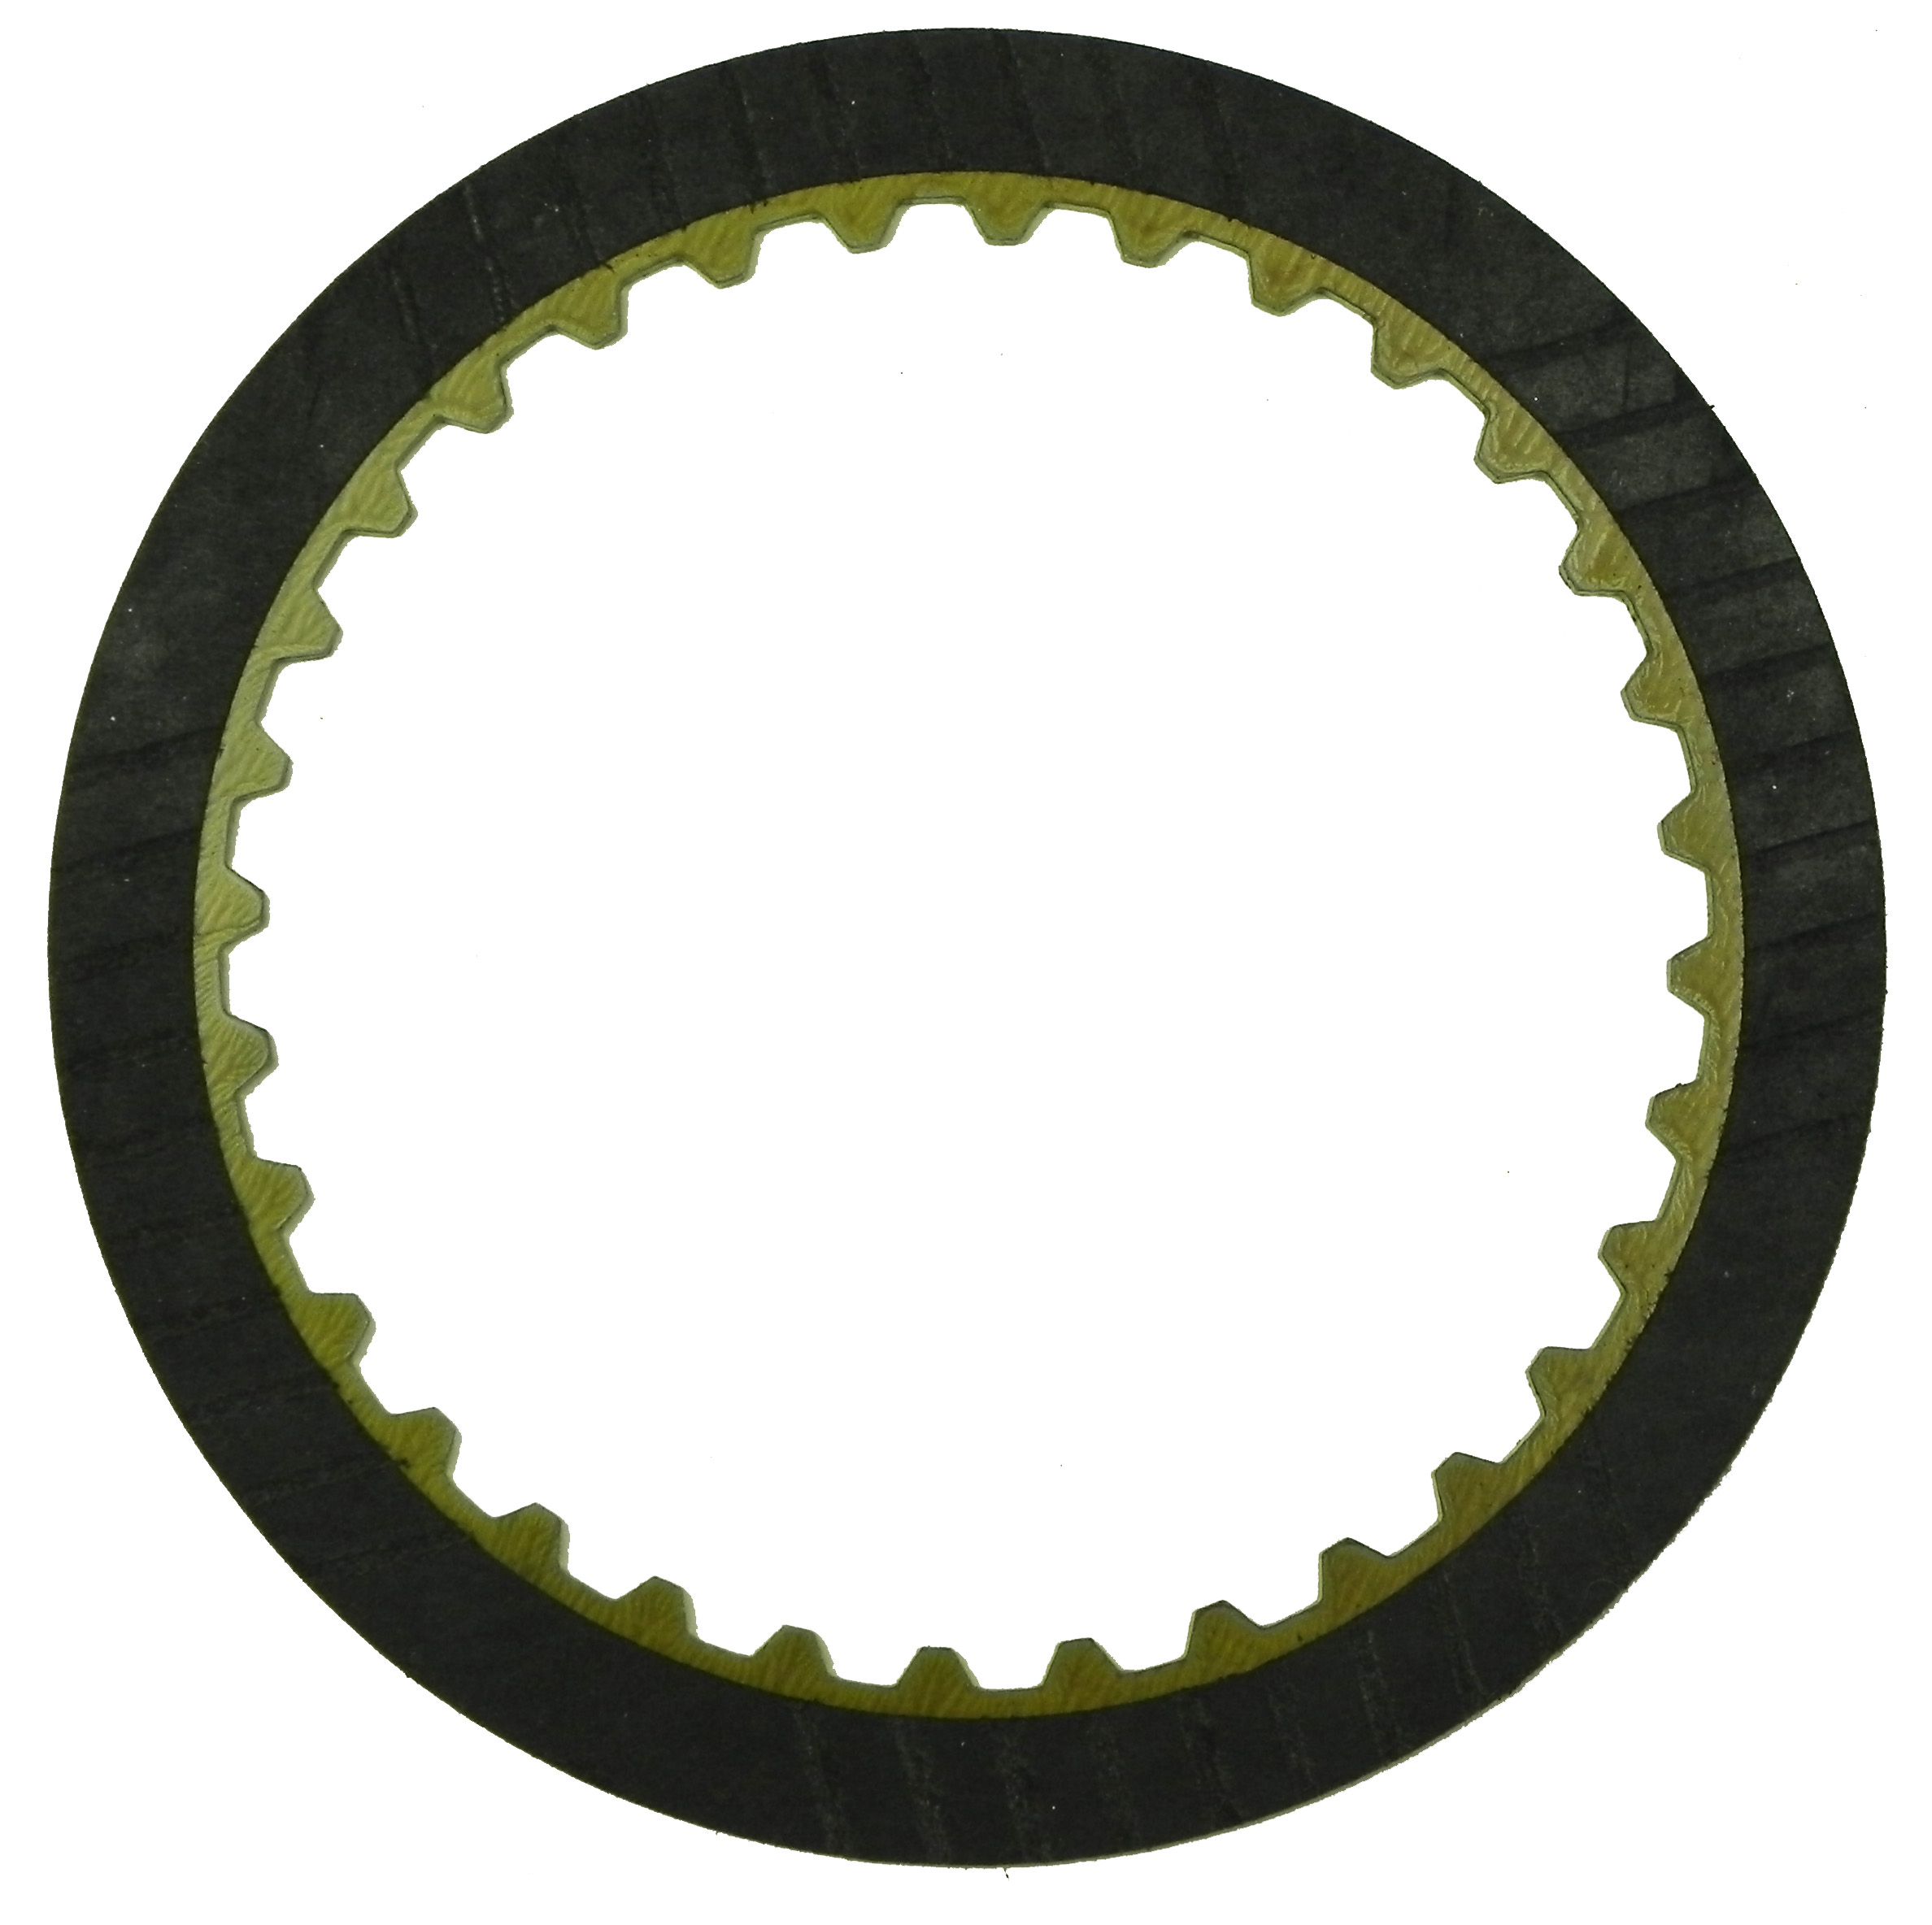 R572305 | 2003-ON Friction Clutch Plate High Energy 3-4 Direct High Energy, Single Sided, ID Spline (Must Be Used With R572315)